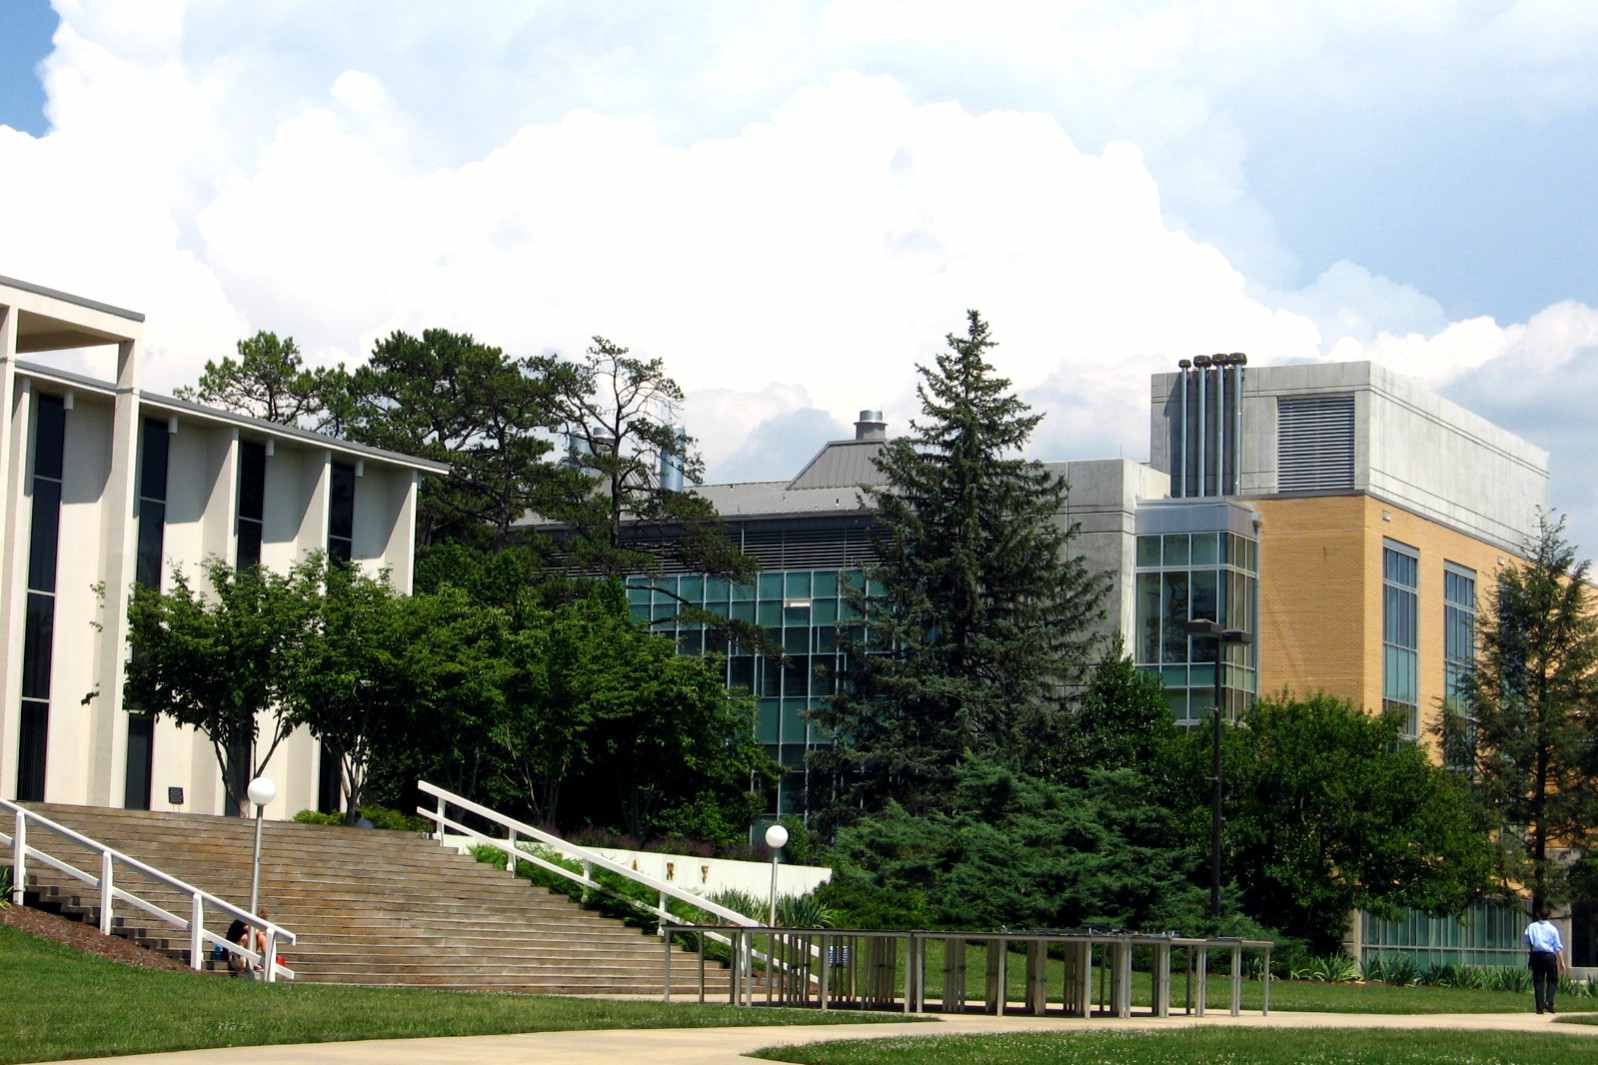 The library and Zeis Hall on campus at UNCA